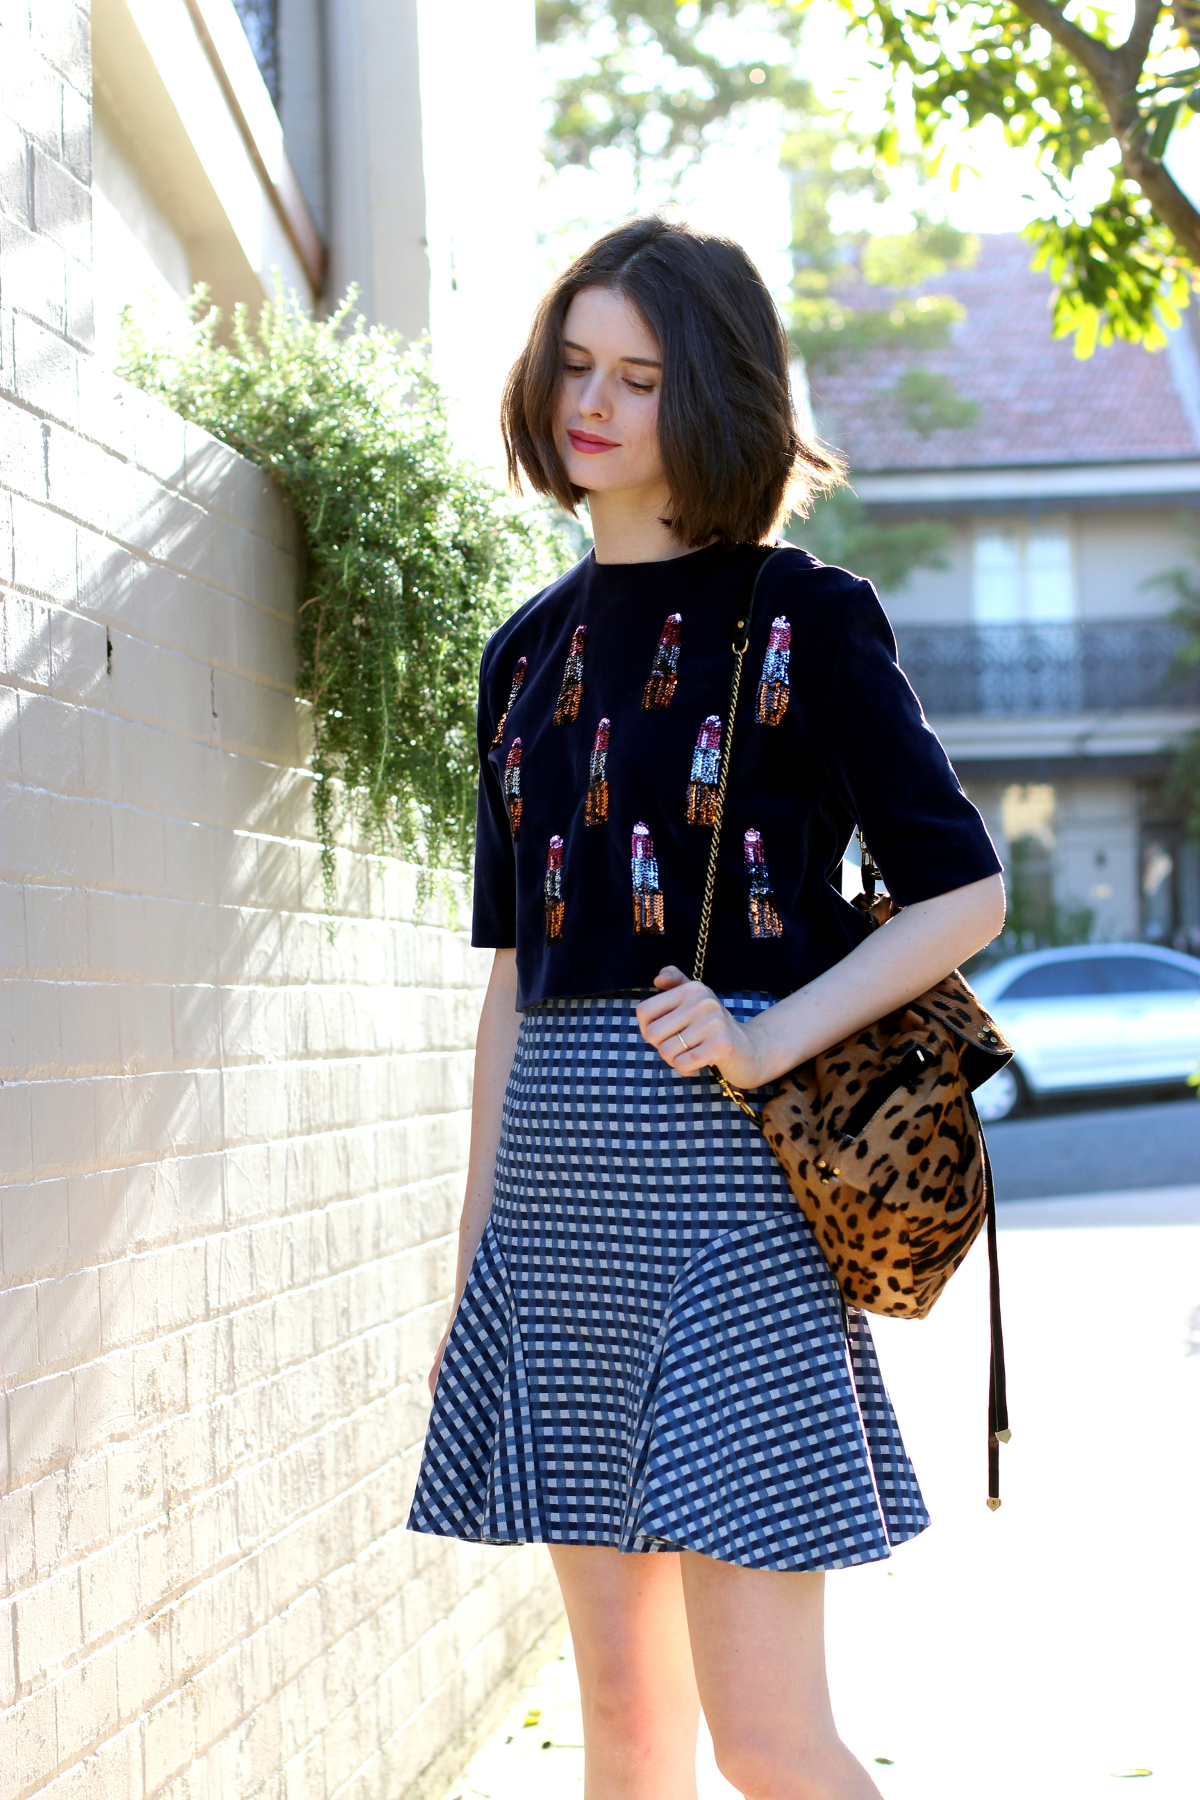 BYCHILL SYDNEY STREET STYLE Chloe Hill Wearing House of Holland navy velvett op with sequin lipstick detail, Bianca Spender blue gingham check skirt and Jerome Dreyfuss leopard print ponyhair backpack